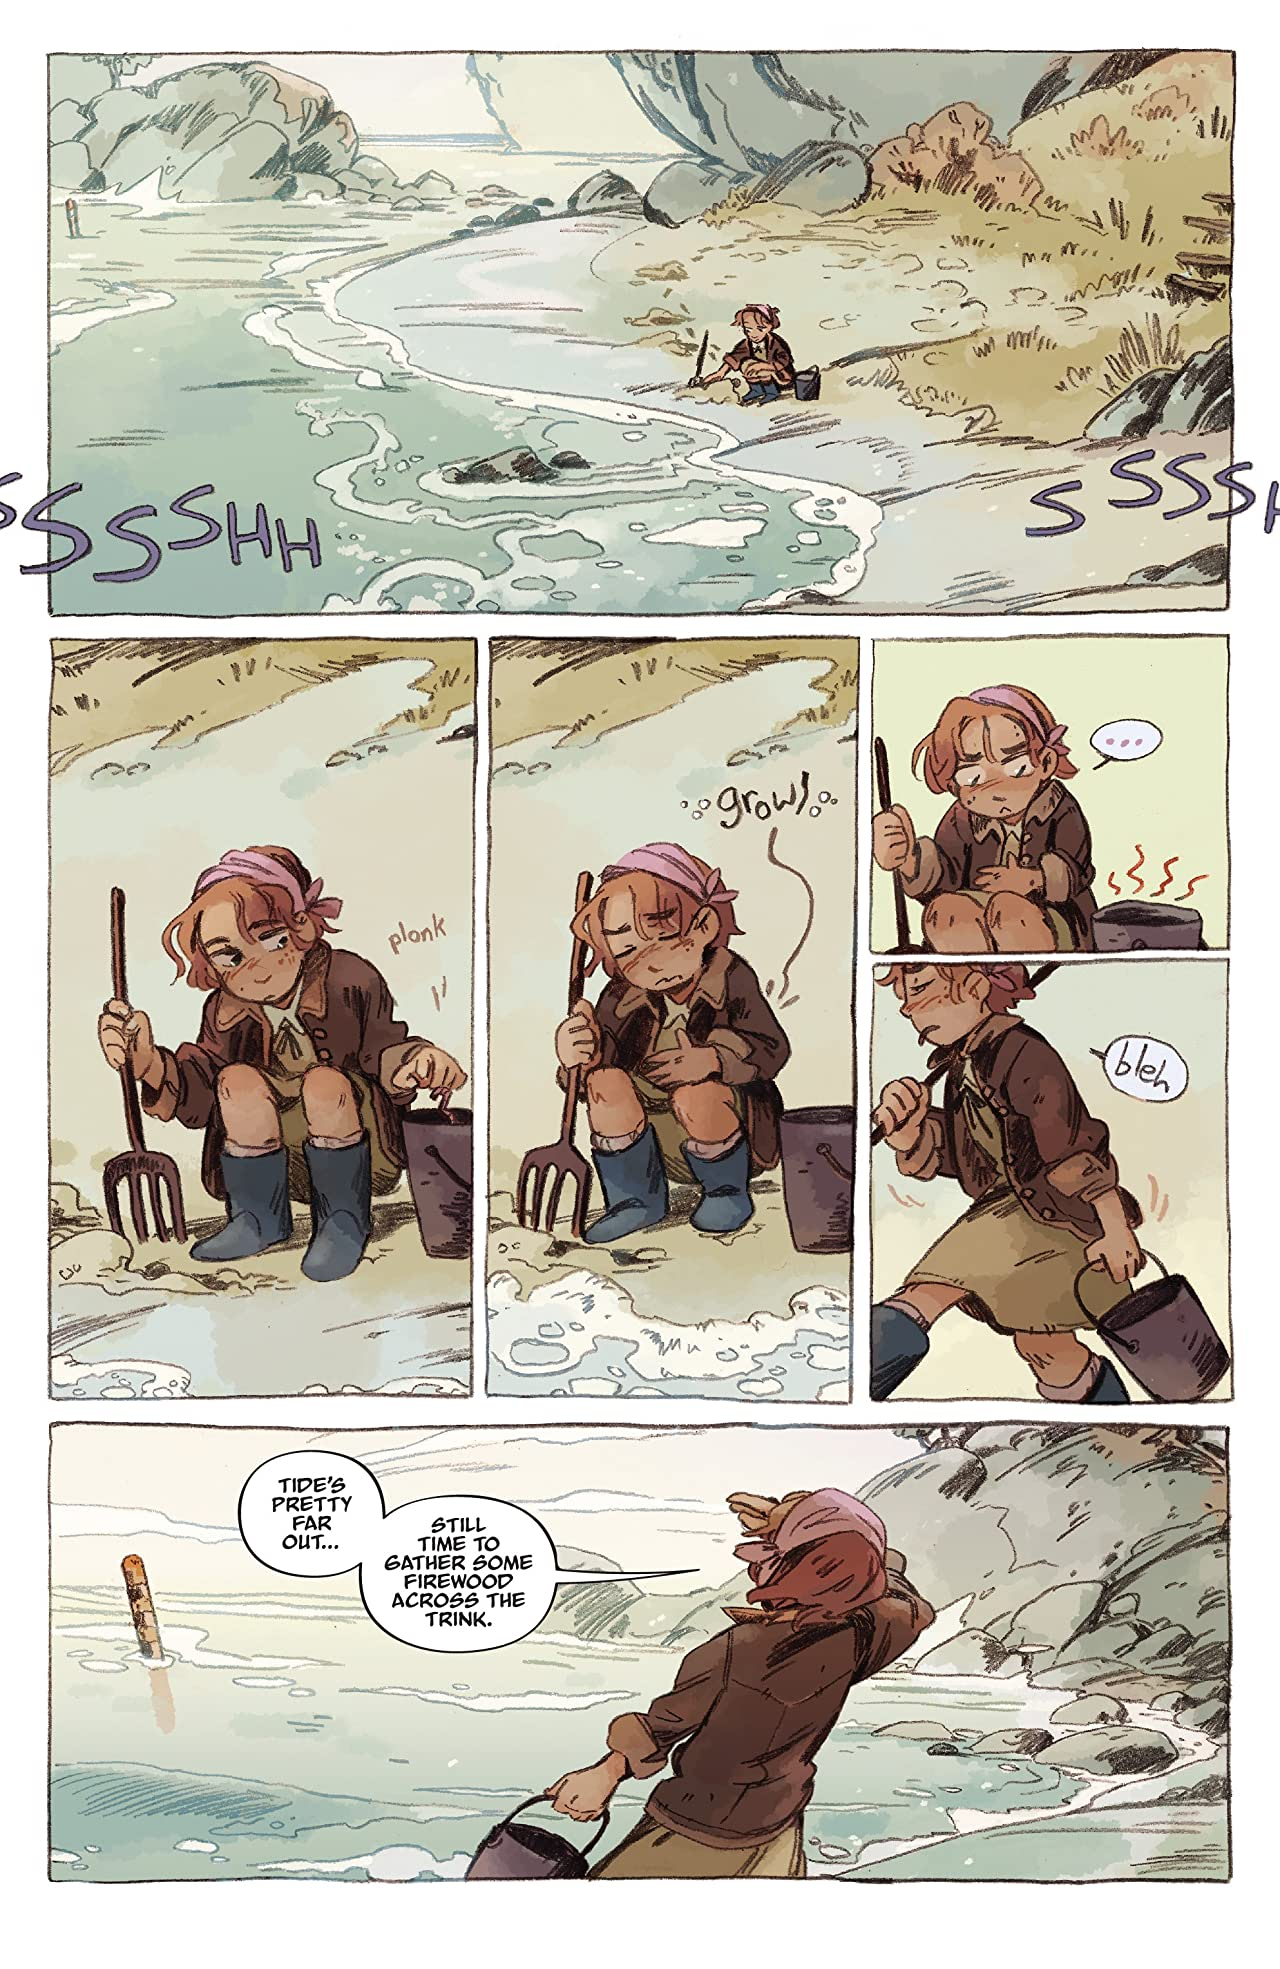 Jim Henson's The Storyteller: Sirens #3